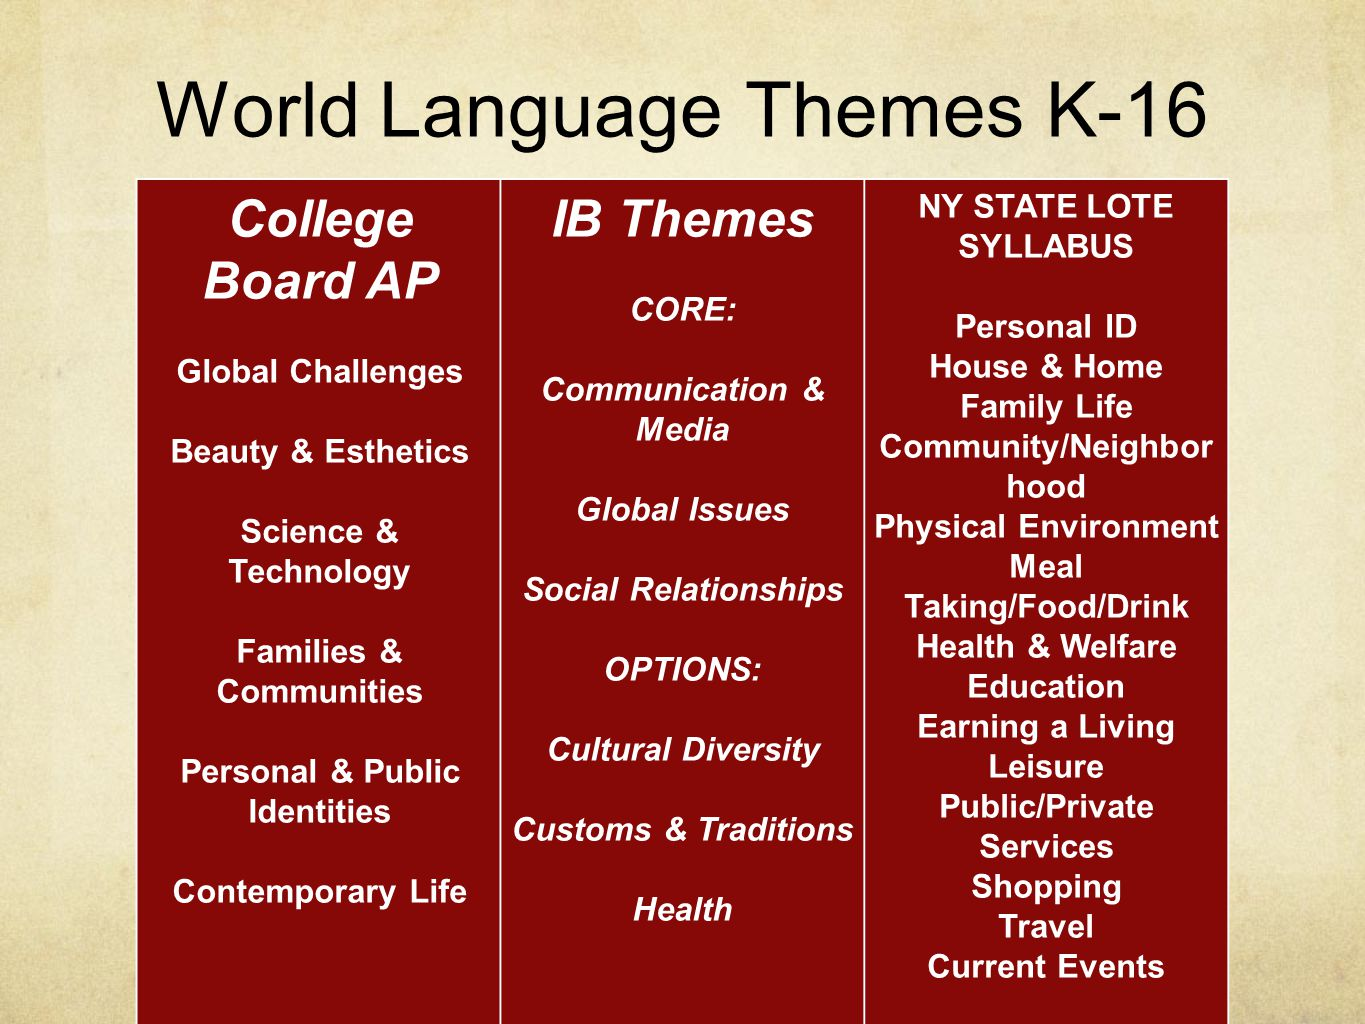 World Language Themes K-16 College Board AP Global Challenges Beauty & Esthetics Science & Technology Families & Communities Personal & Public Identities Contemporary Life IB Themes CORE: Communication & Media Global Issues Social Relationships OPTIONS: Cultural Diversity Customs & Traditions Health NY STATE LOTE SYLLABUS Personal ID House & Home Family Life Community/Neighbor hood Physical Environment Meal Taking/Food/Drink Health & Welfare Education Earning a Living Leisure Public/Private Services Shopping Travel Current Events